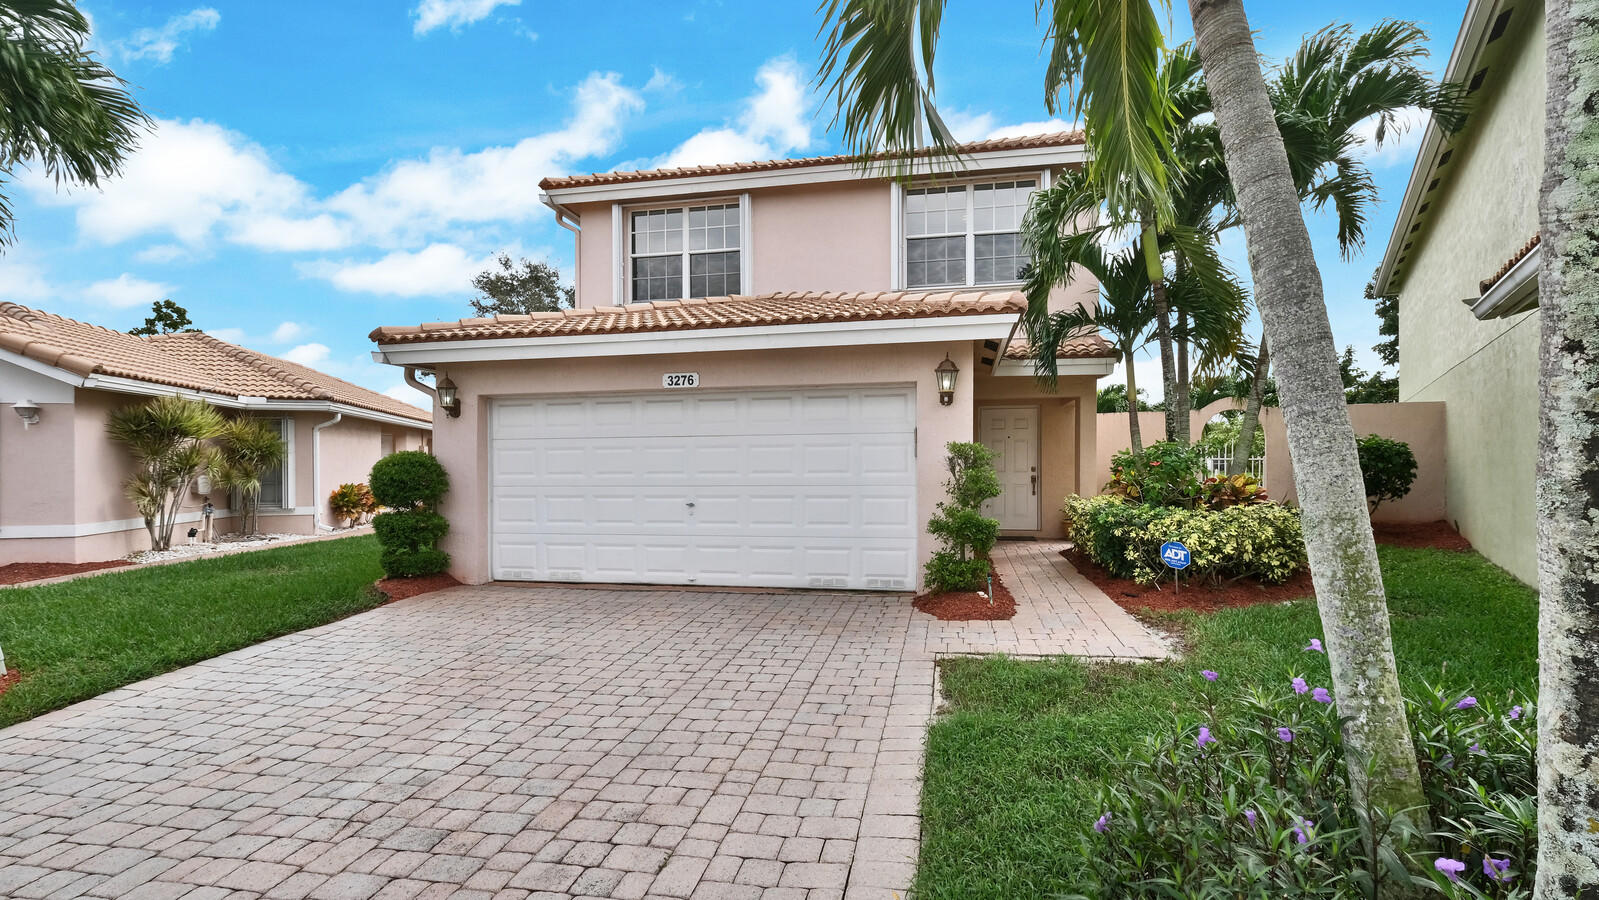 Home for sale in Liberty Bay - Briar Bay West Palm Beach Florida